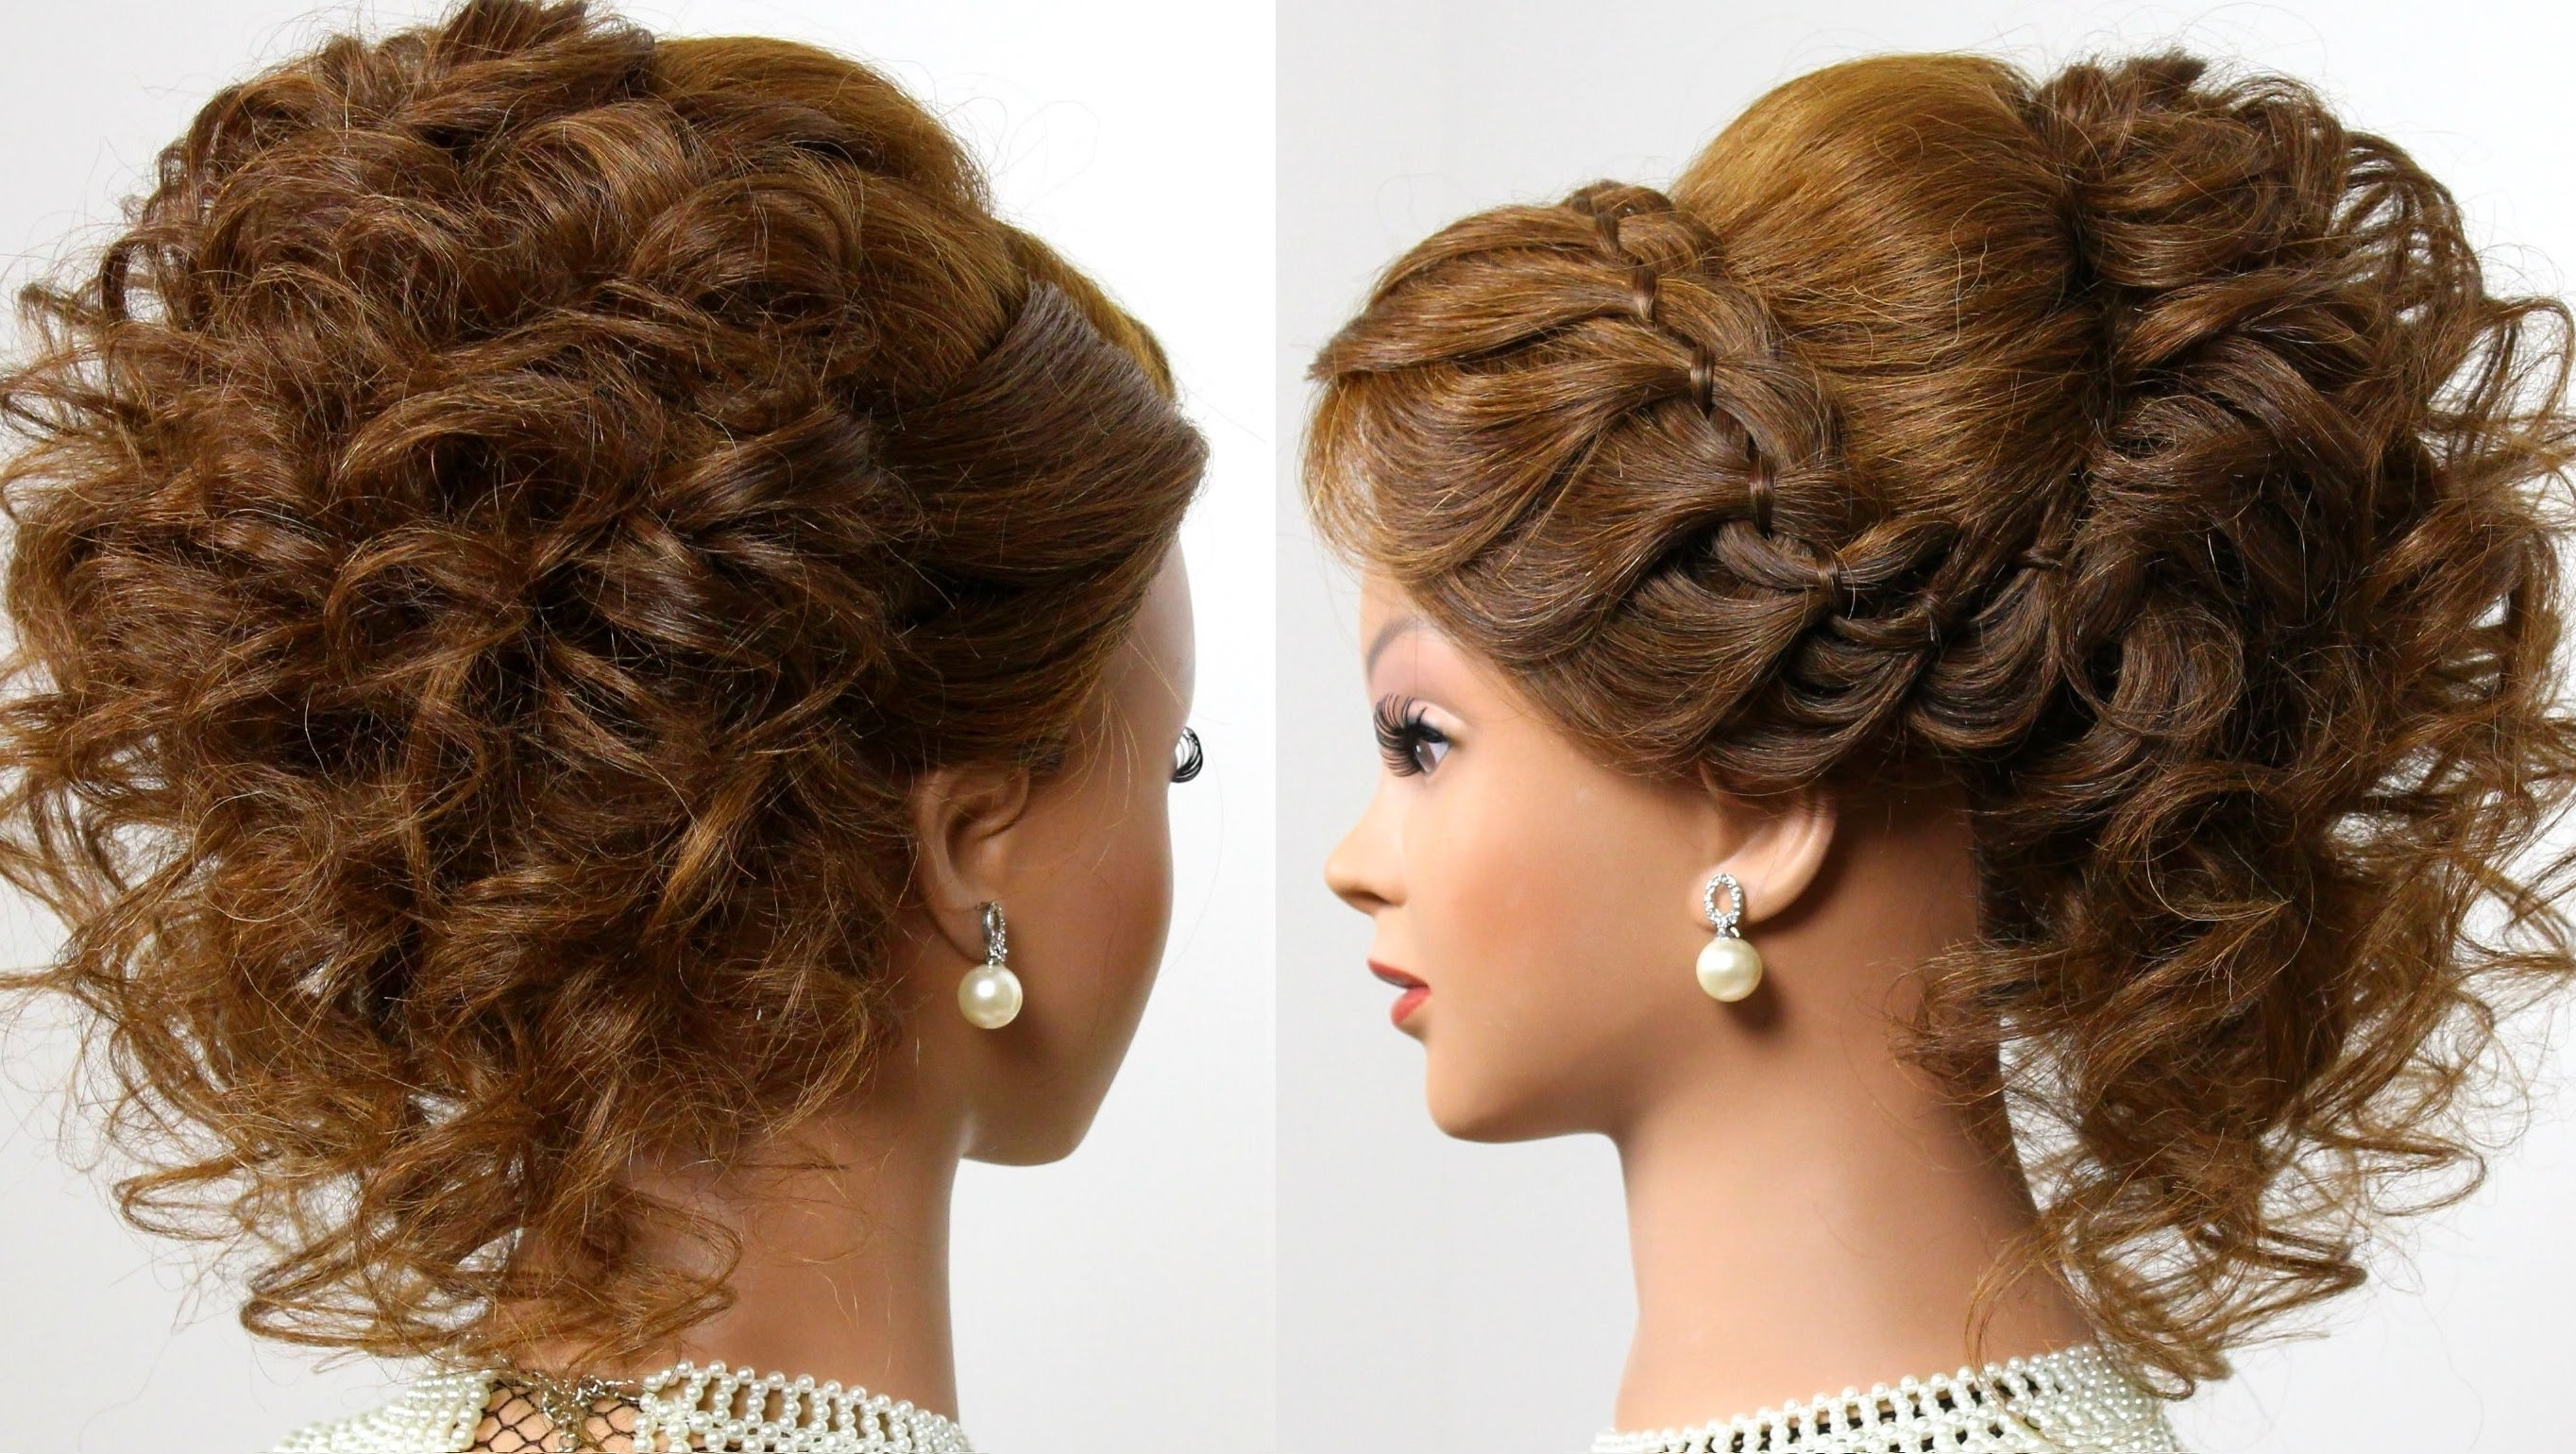 Newest Wedding Hairstyles For Long Hair Bridesmaid Throughout Hairstyles For Long Hair Wedding Bridesmaid – Hairstyle For Women & Man (View 14 of 15)